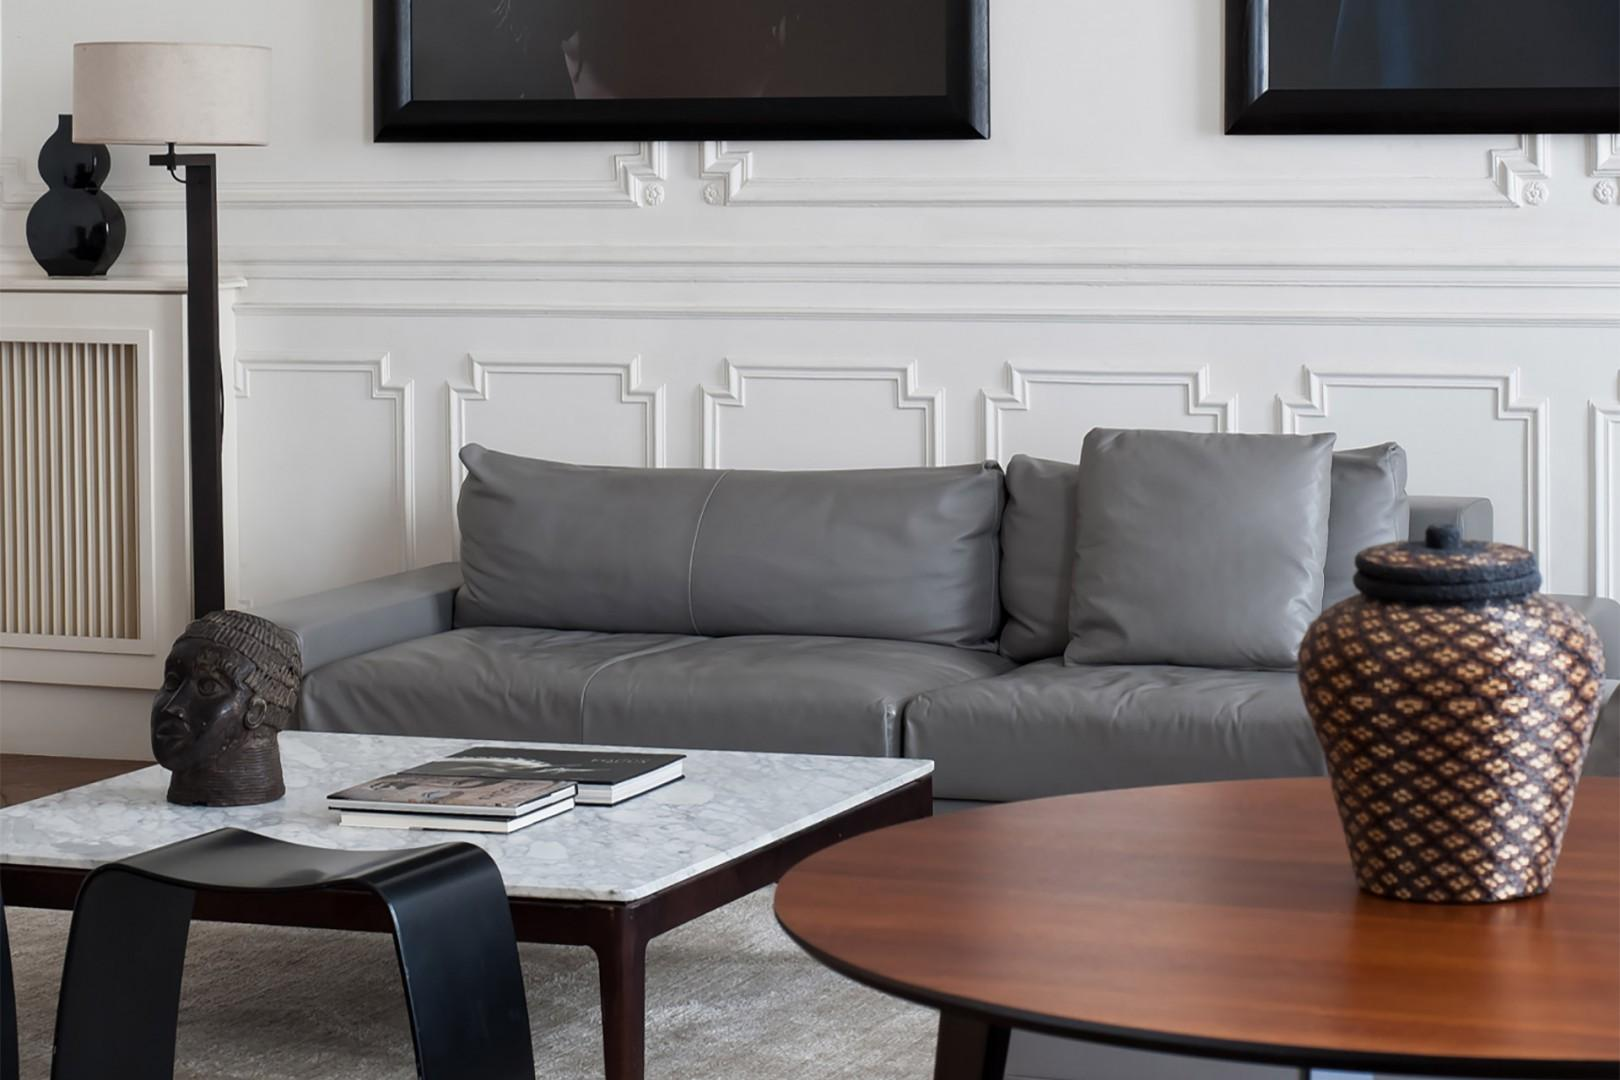 Relax on the comfortable sofas in the living room.